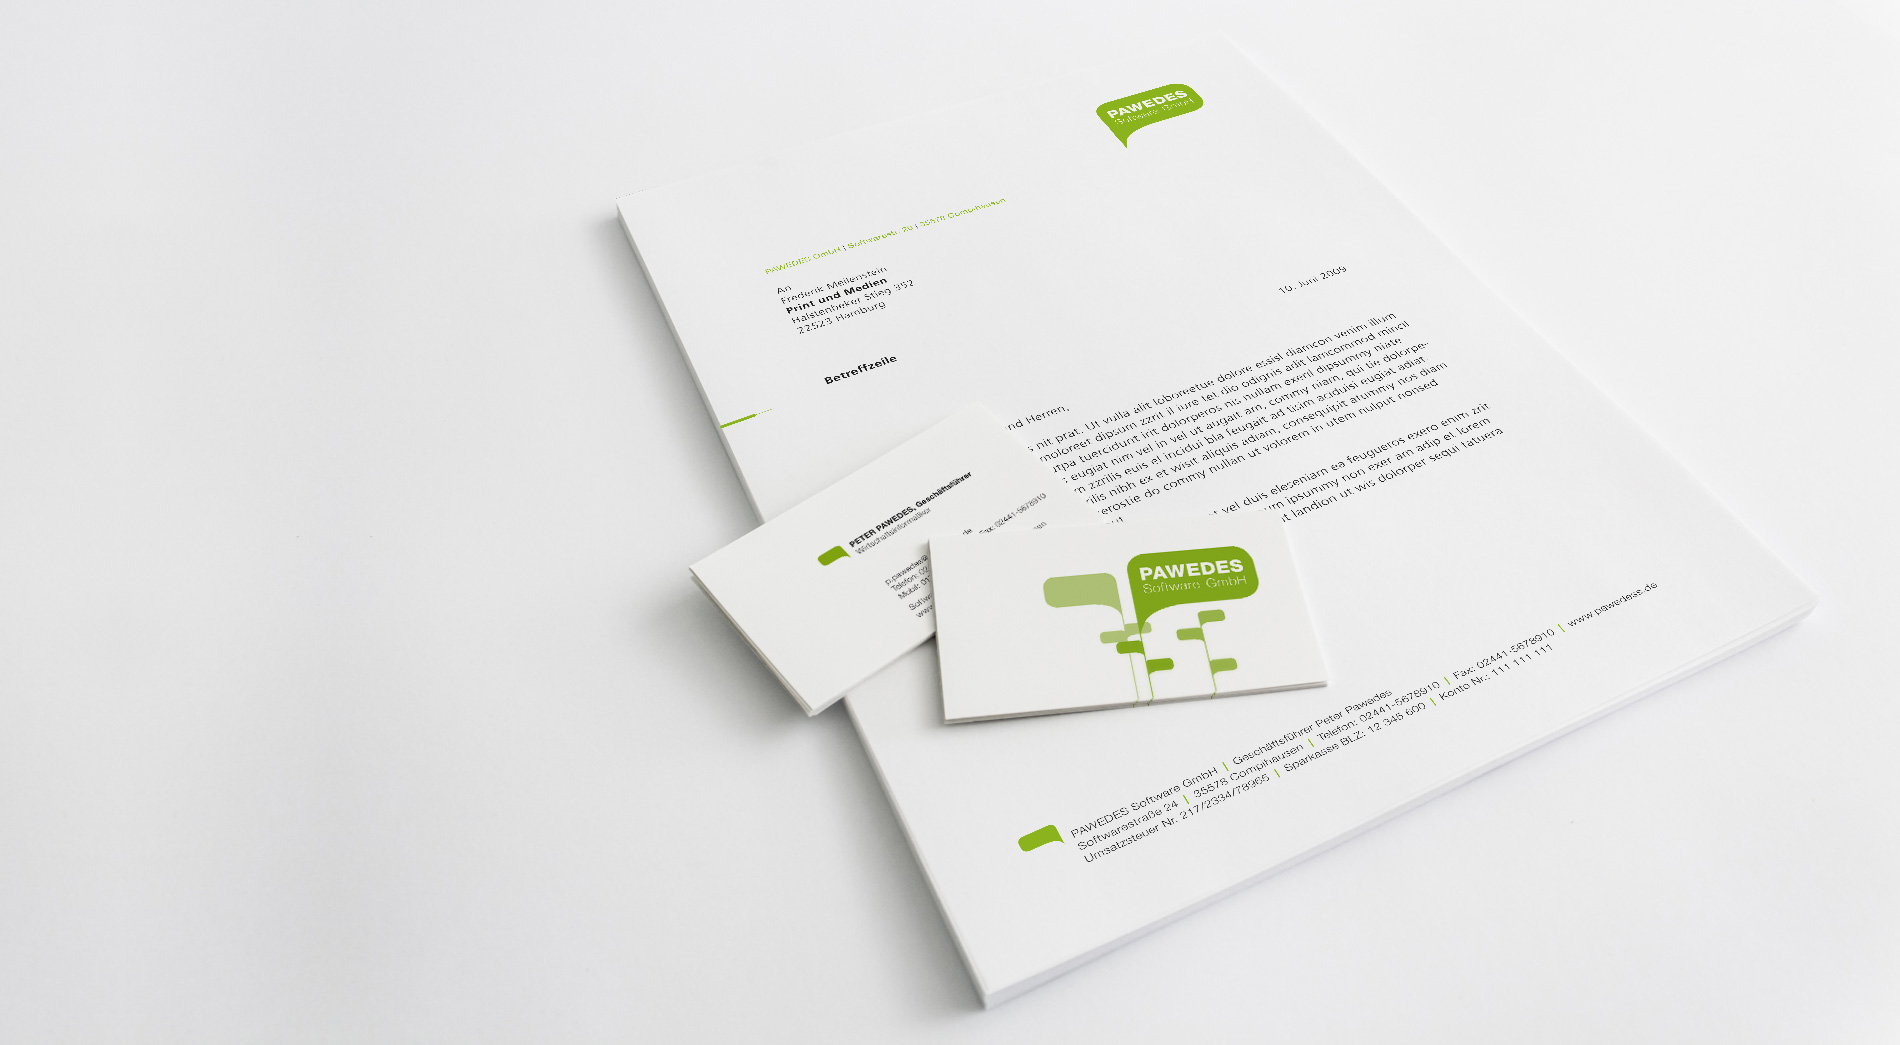 Corporate Design Pawedes